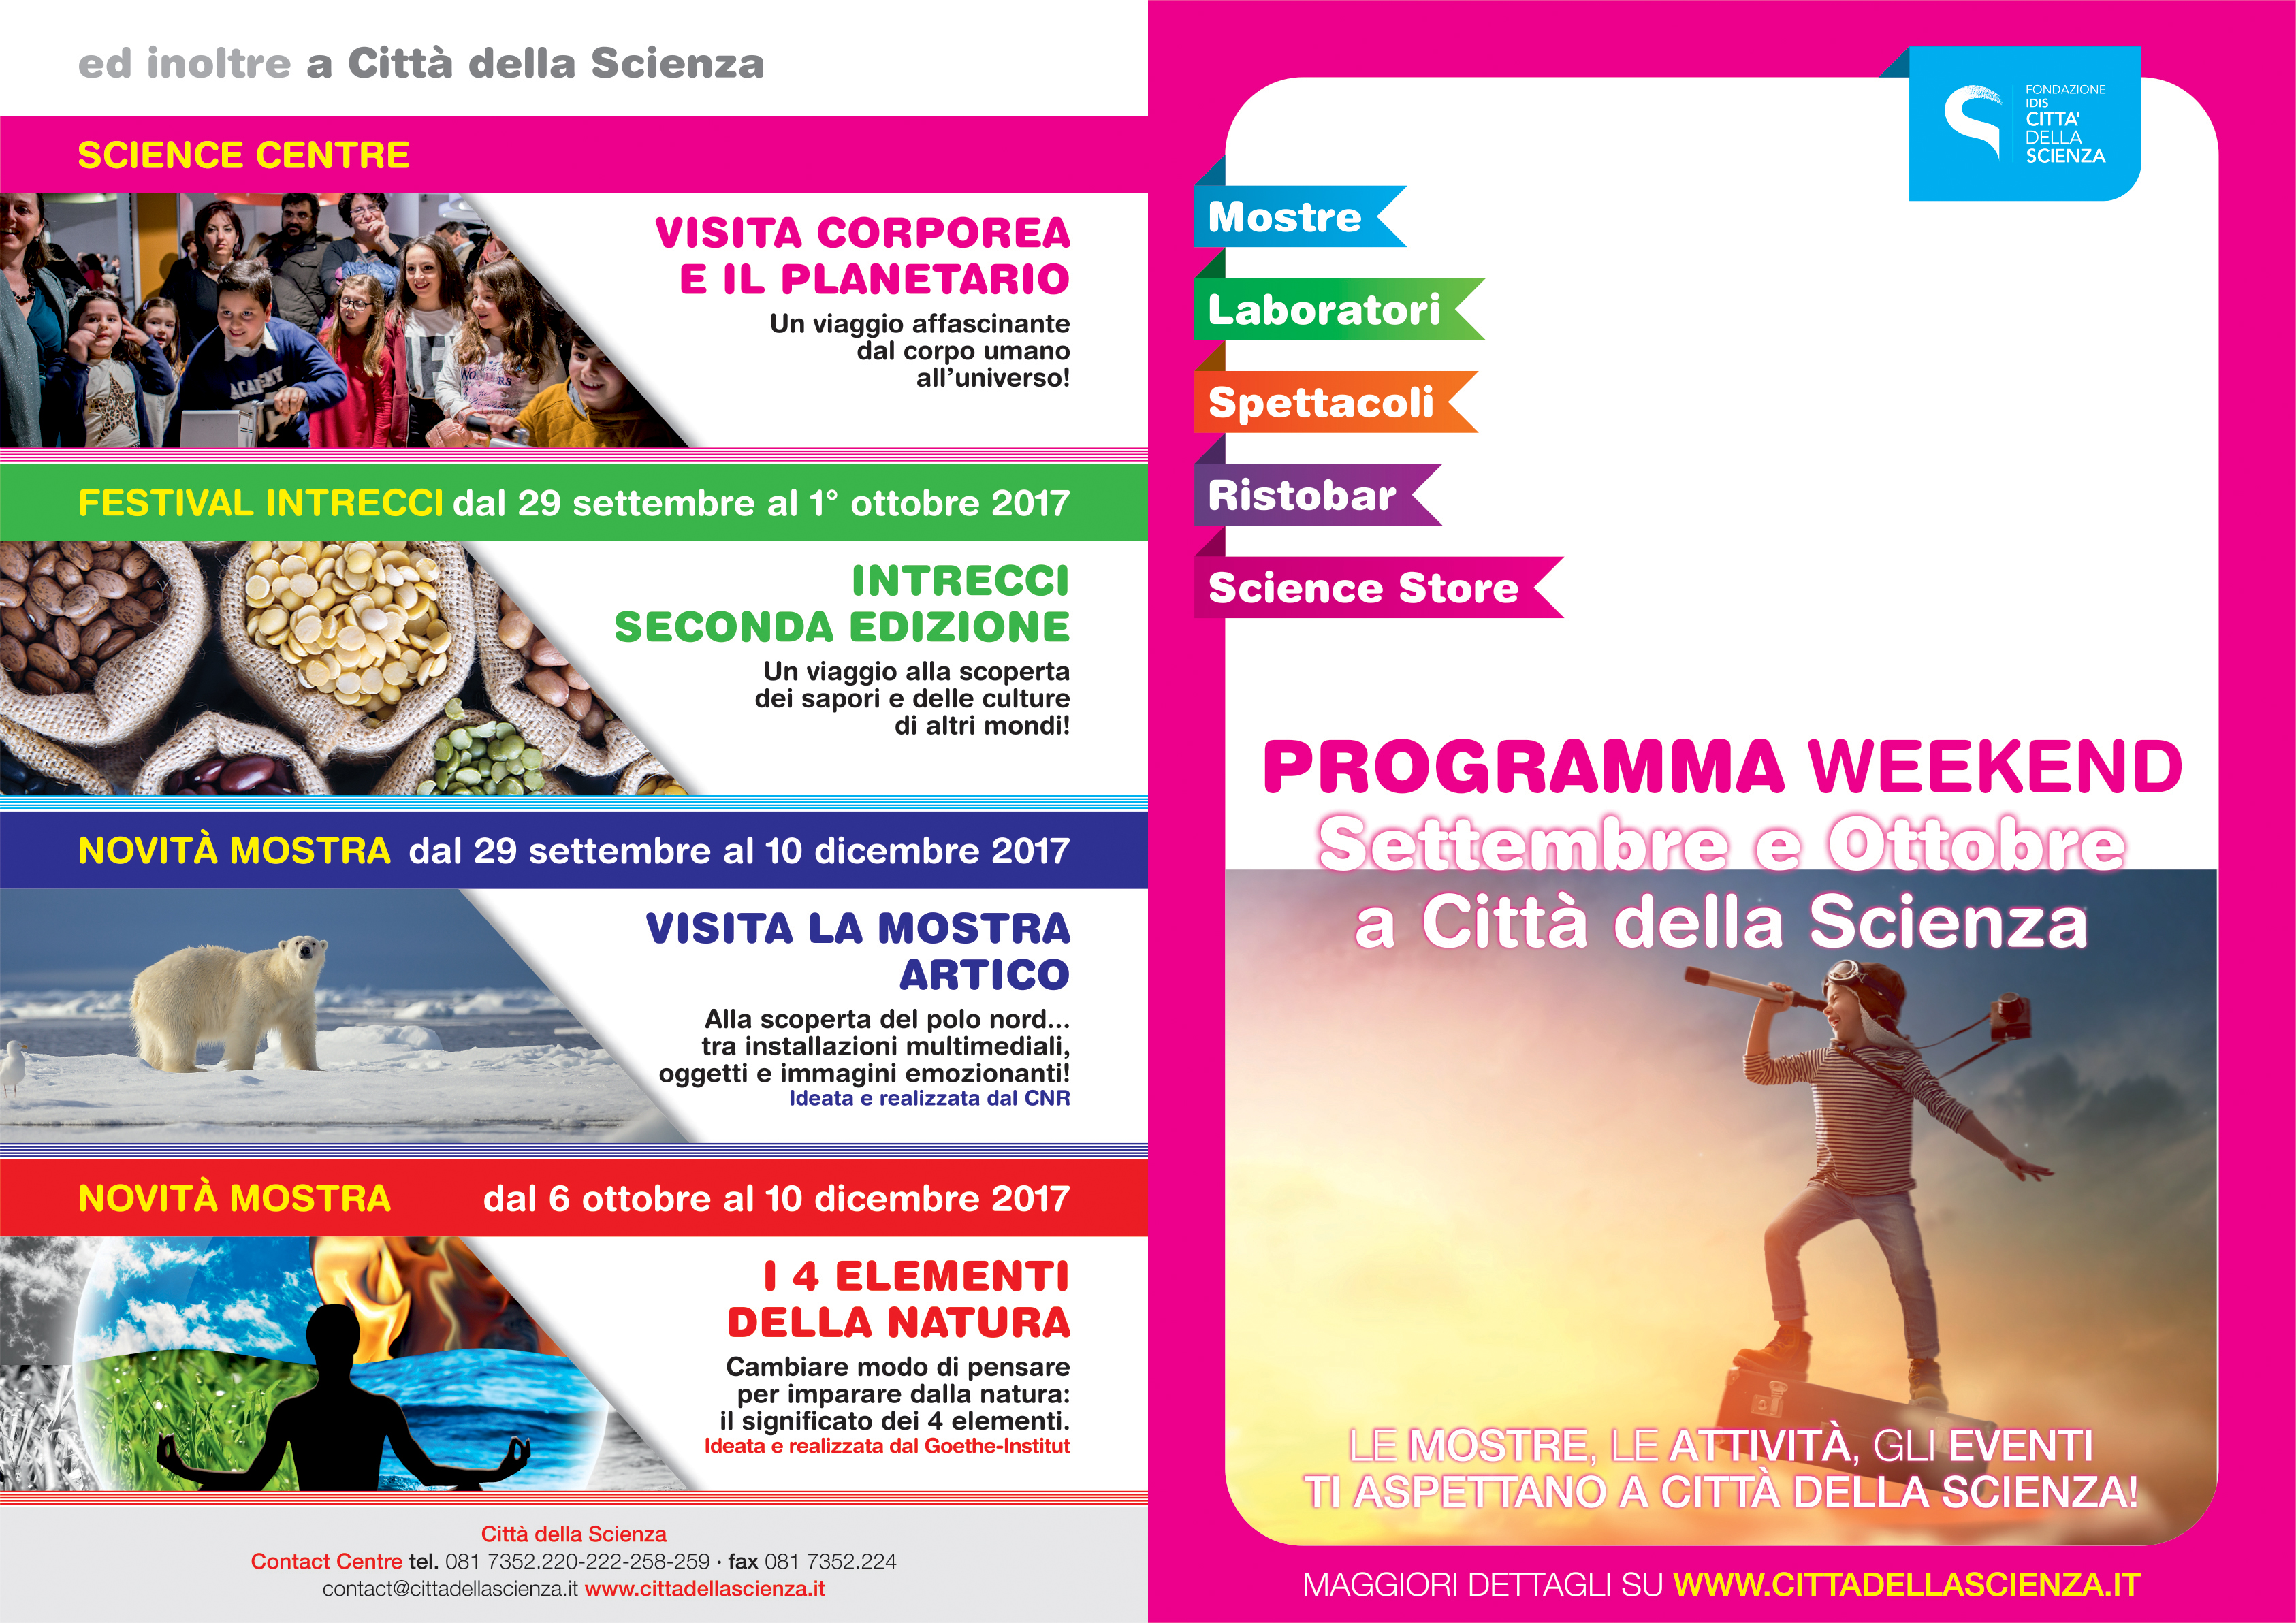 MASTER_week_end_settembre-ottobre_(015)_ok_stampa.cdr